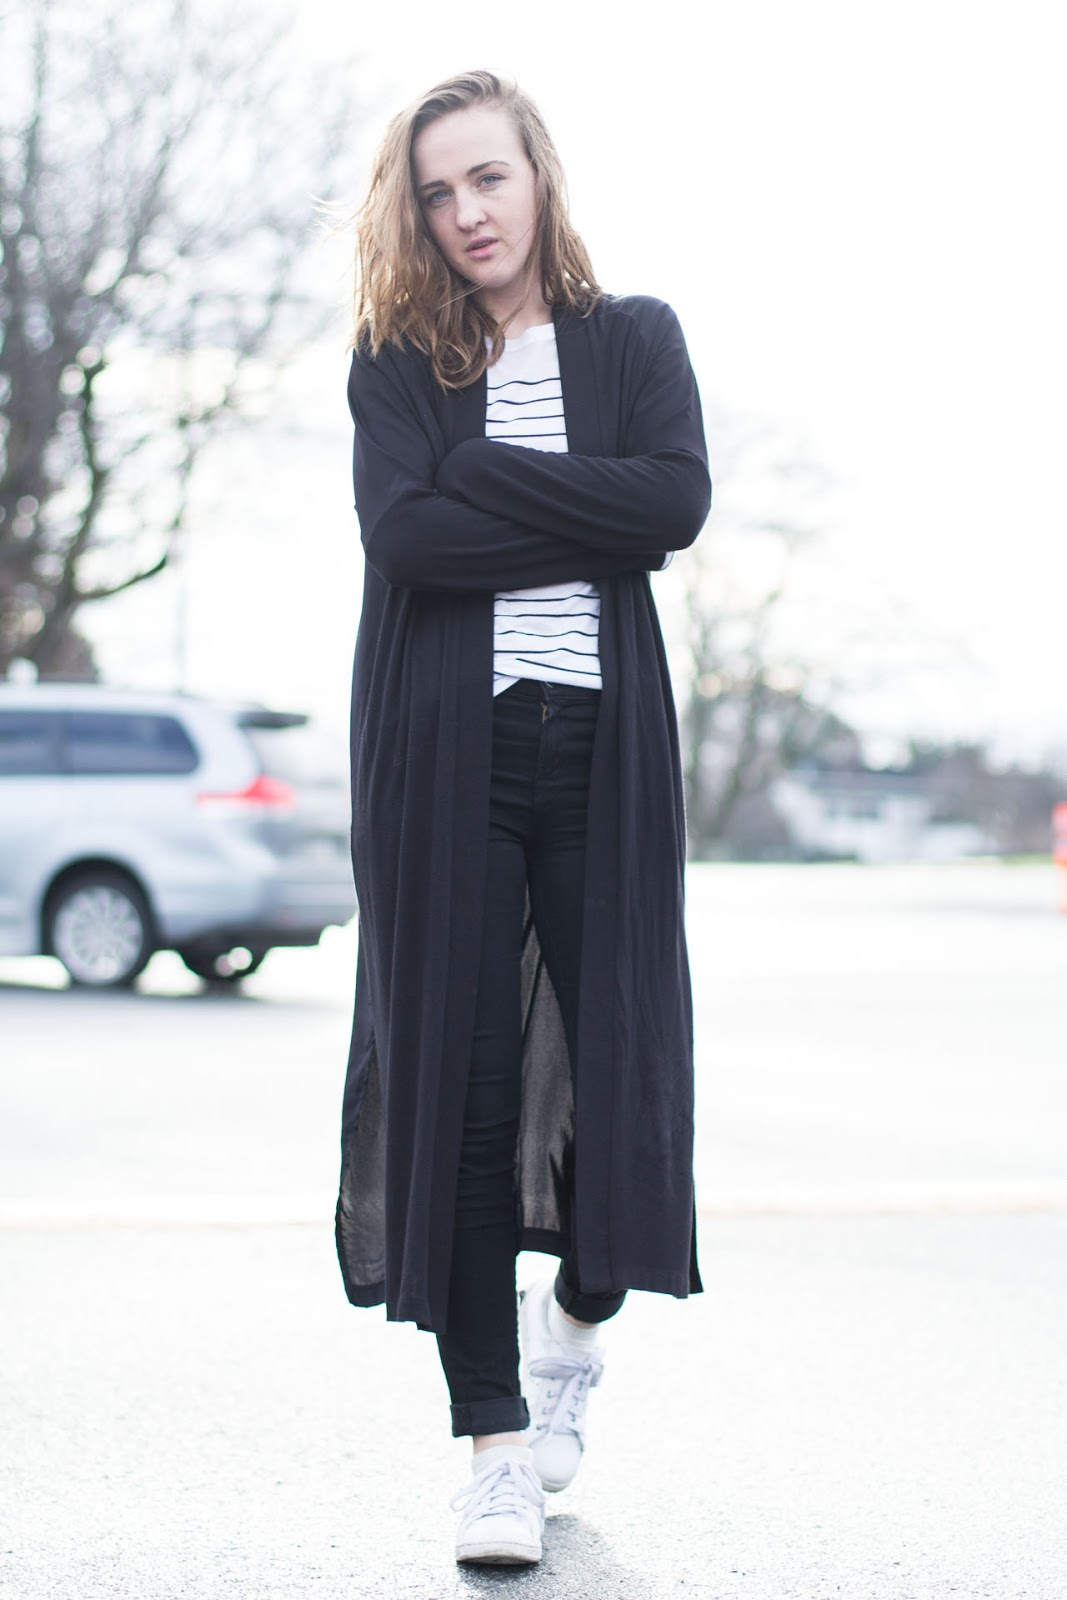 Wanderlust and outfit - Vancouver, Canada, Style and Fashion Blog